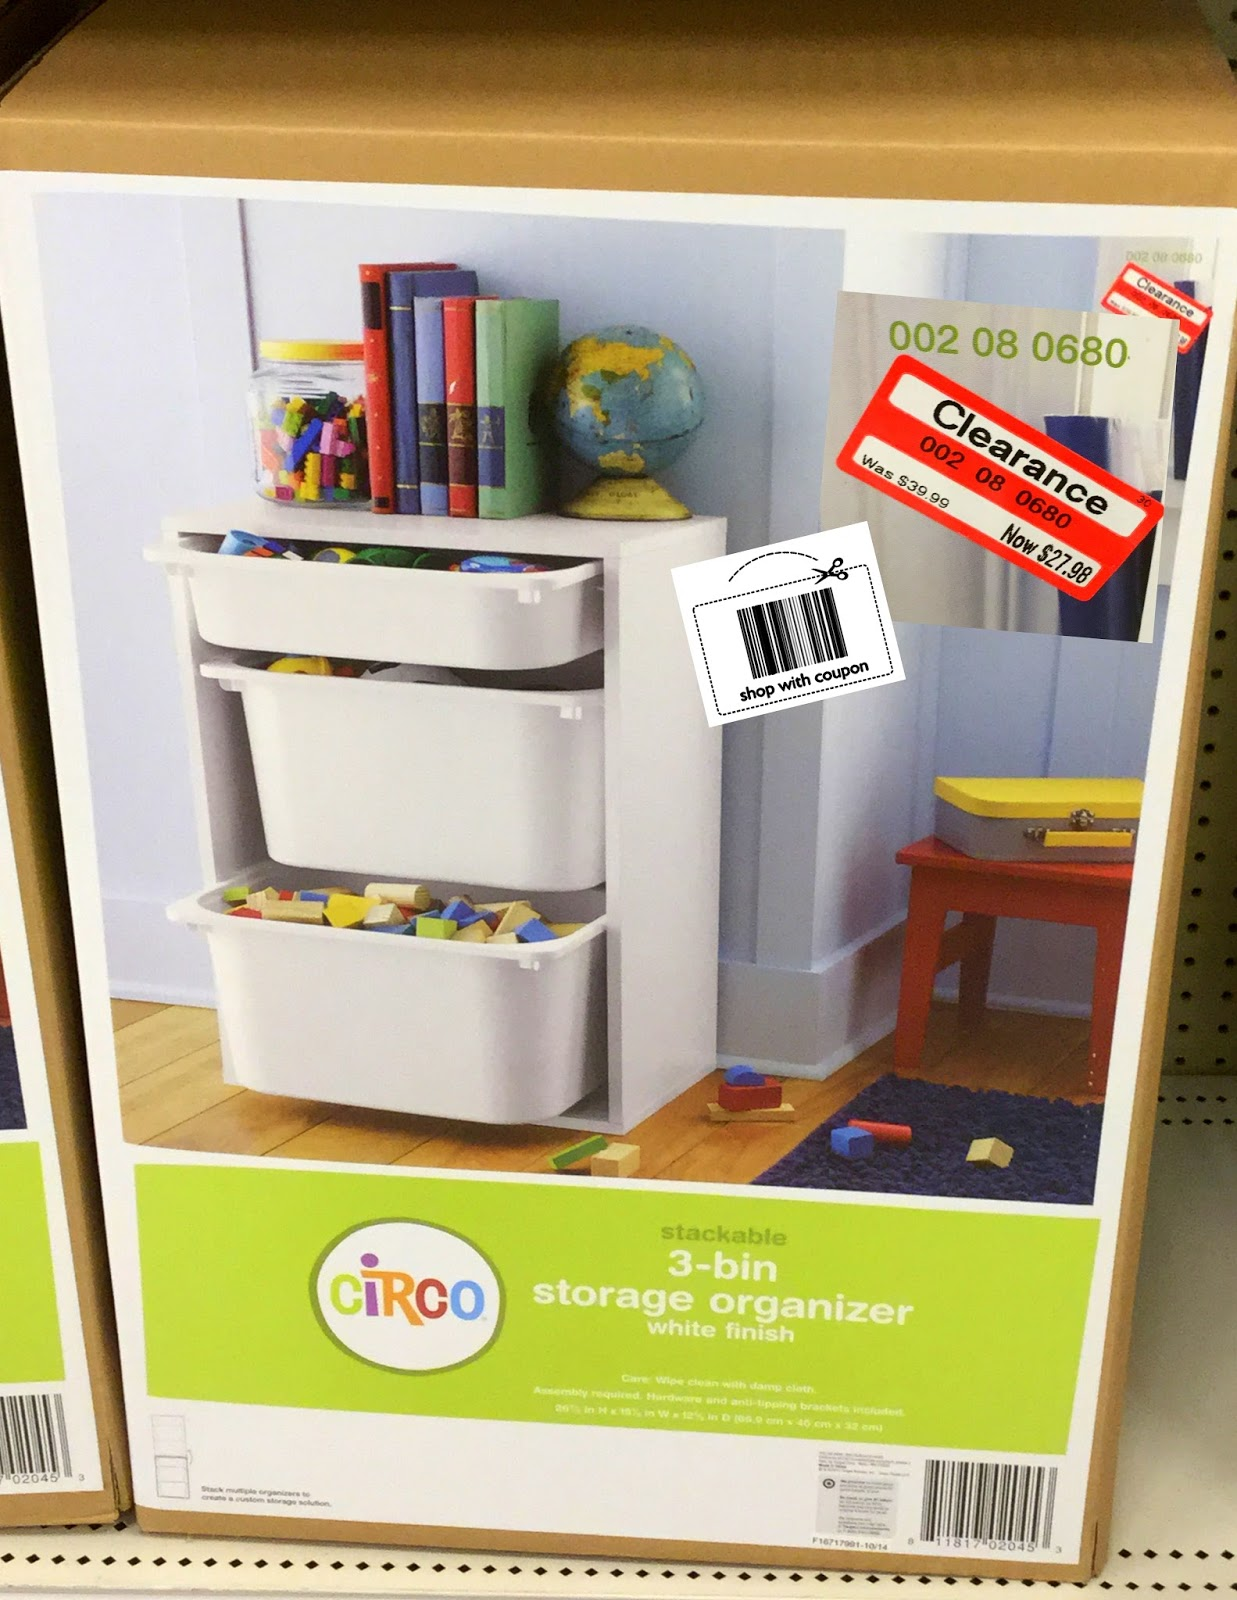 Target Clearance :: Save 50% On Circo Storage Bins And Organizers